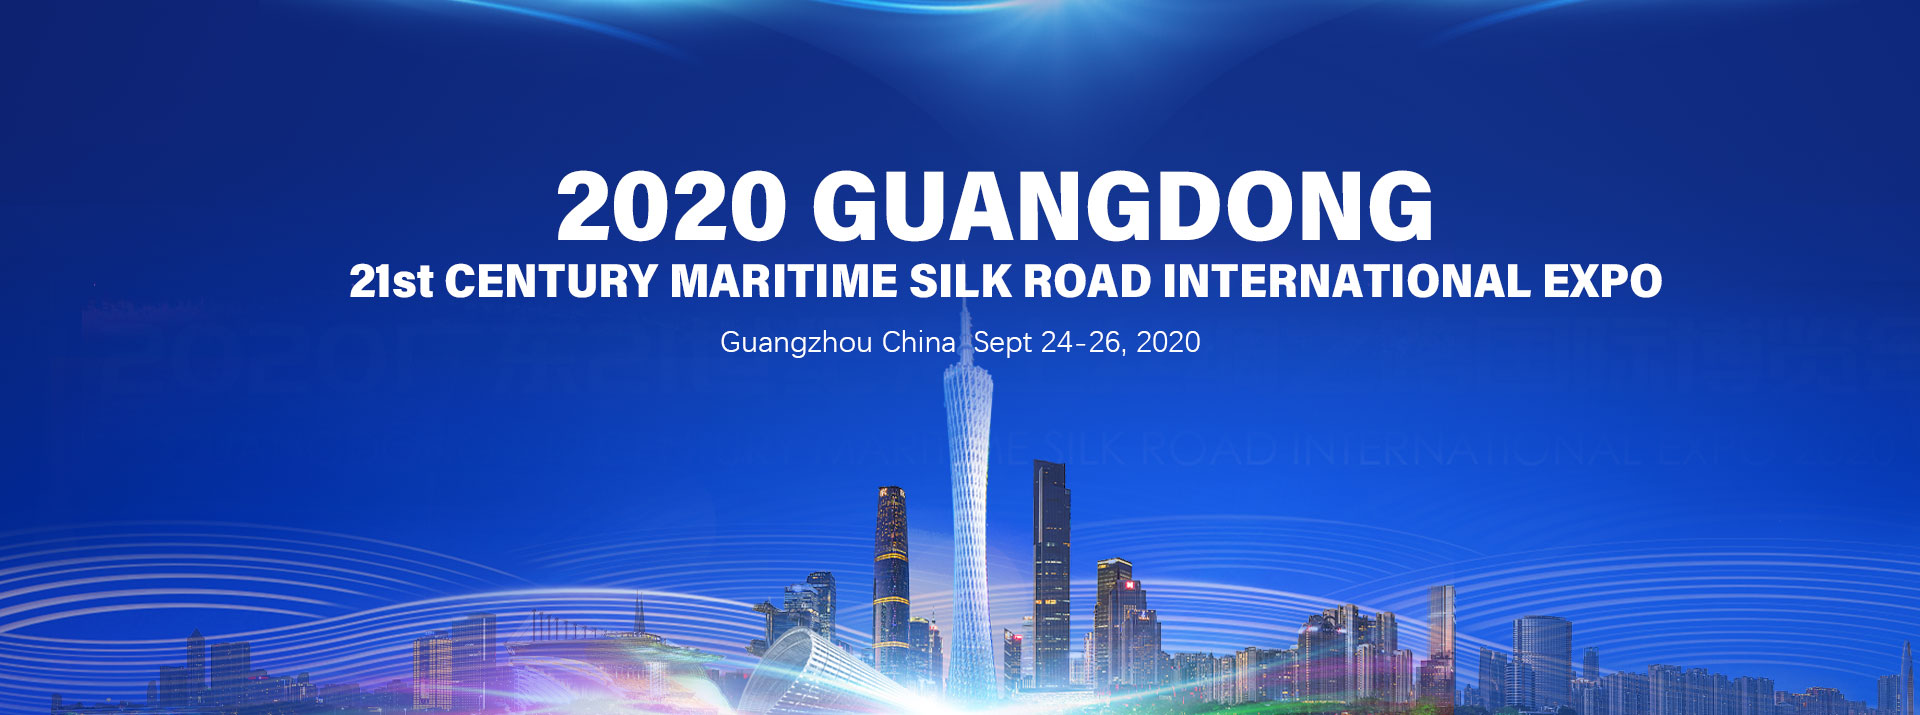 2020 Guangdong 21st Century Maritime Silk Road International Expo